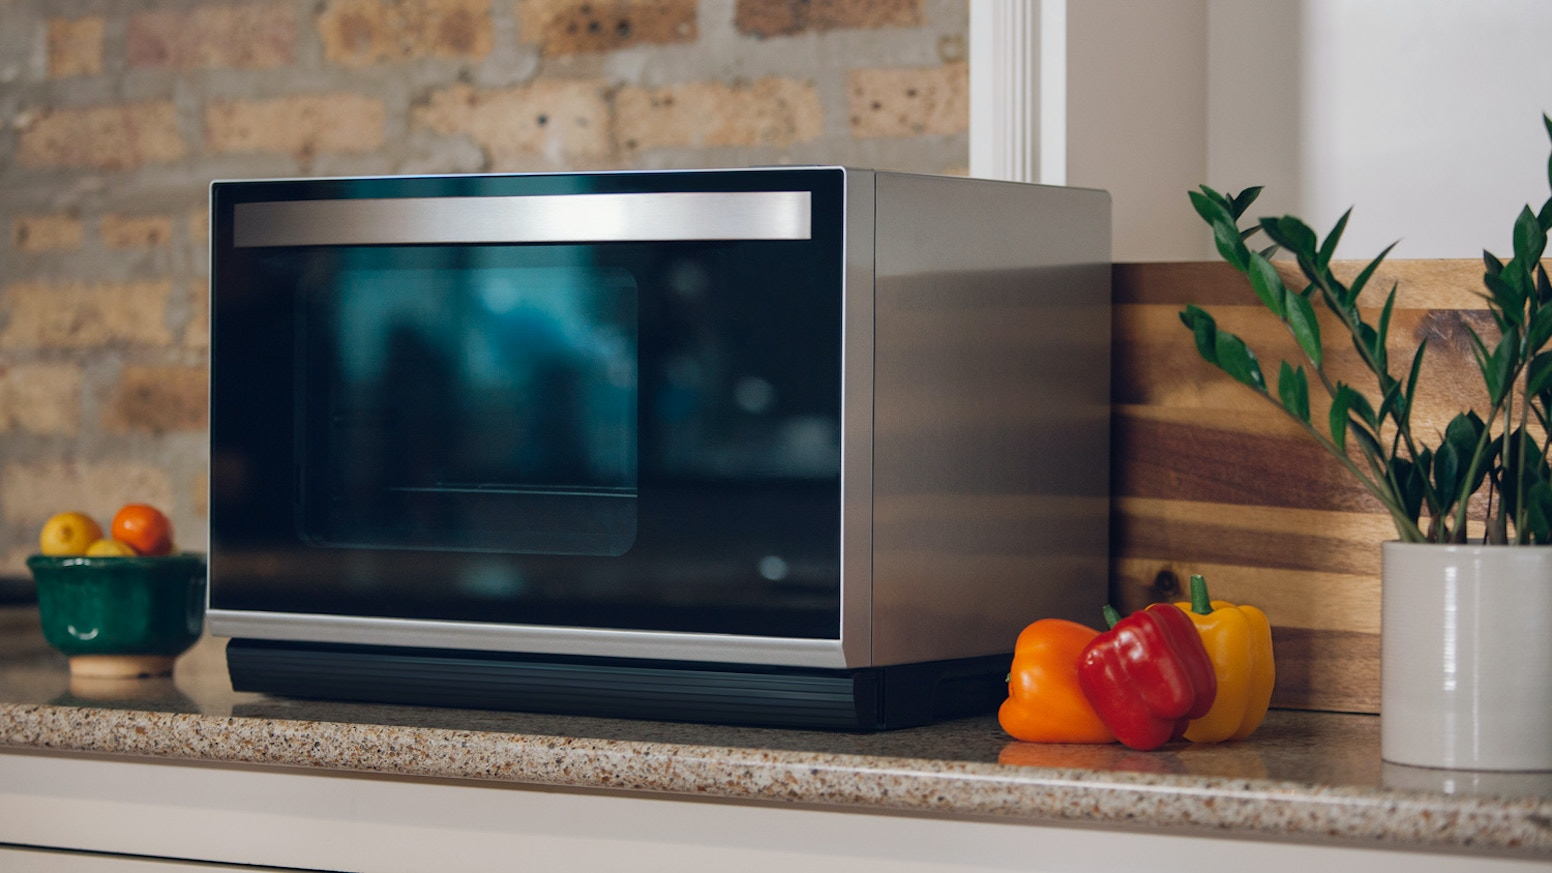 Tovala is a multi-function smart oven and food-delivery plan that work together so you can enjoy delicious, fresh home cooking quickly.